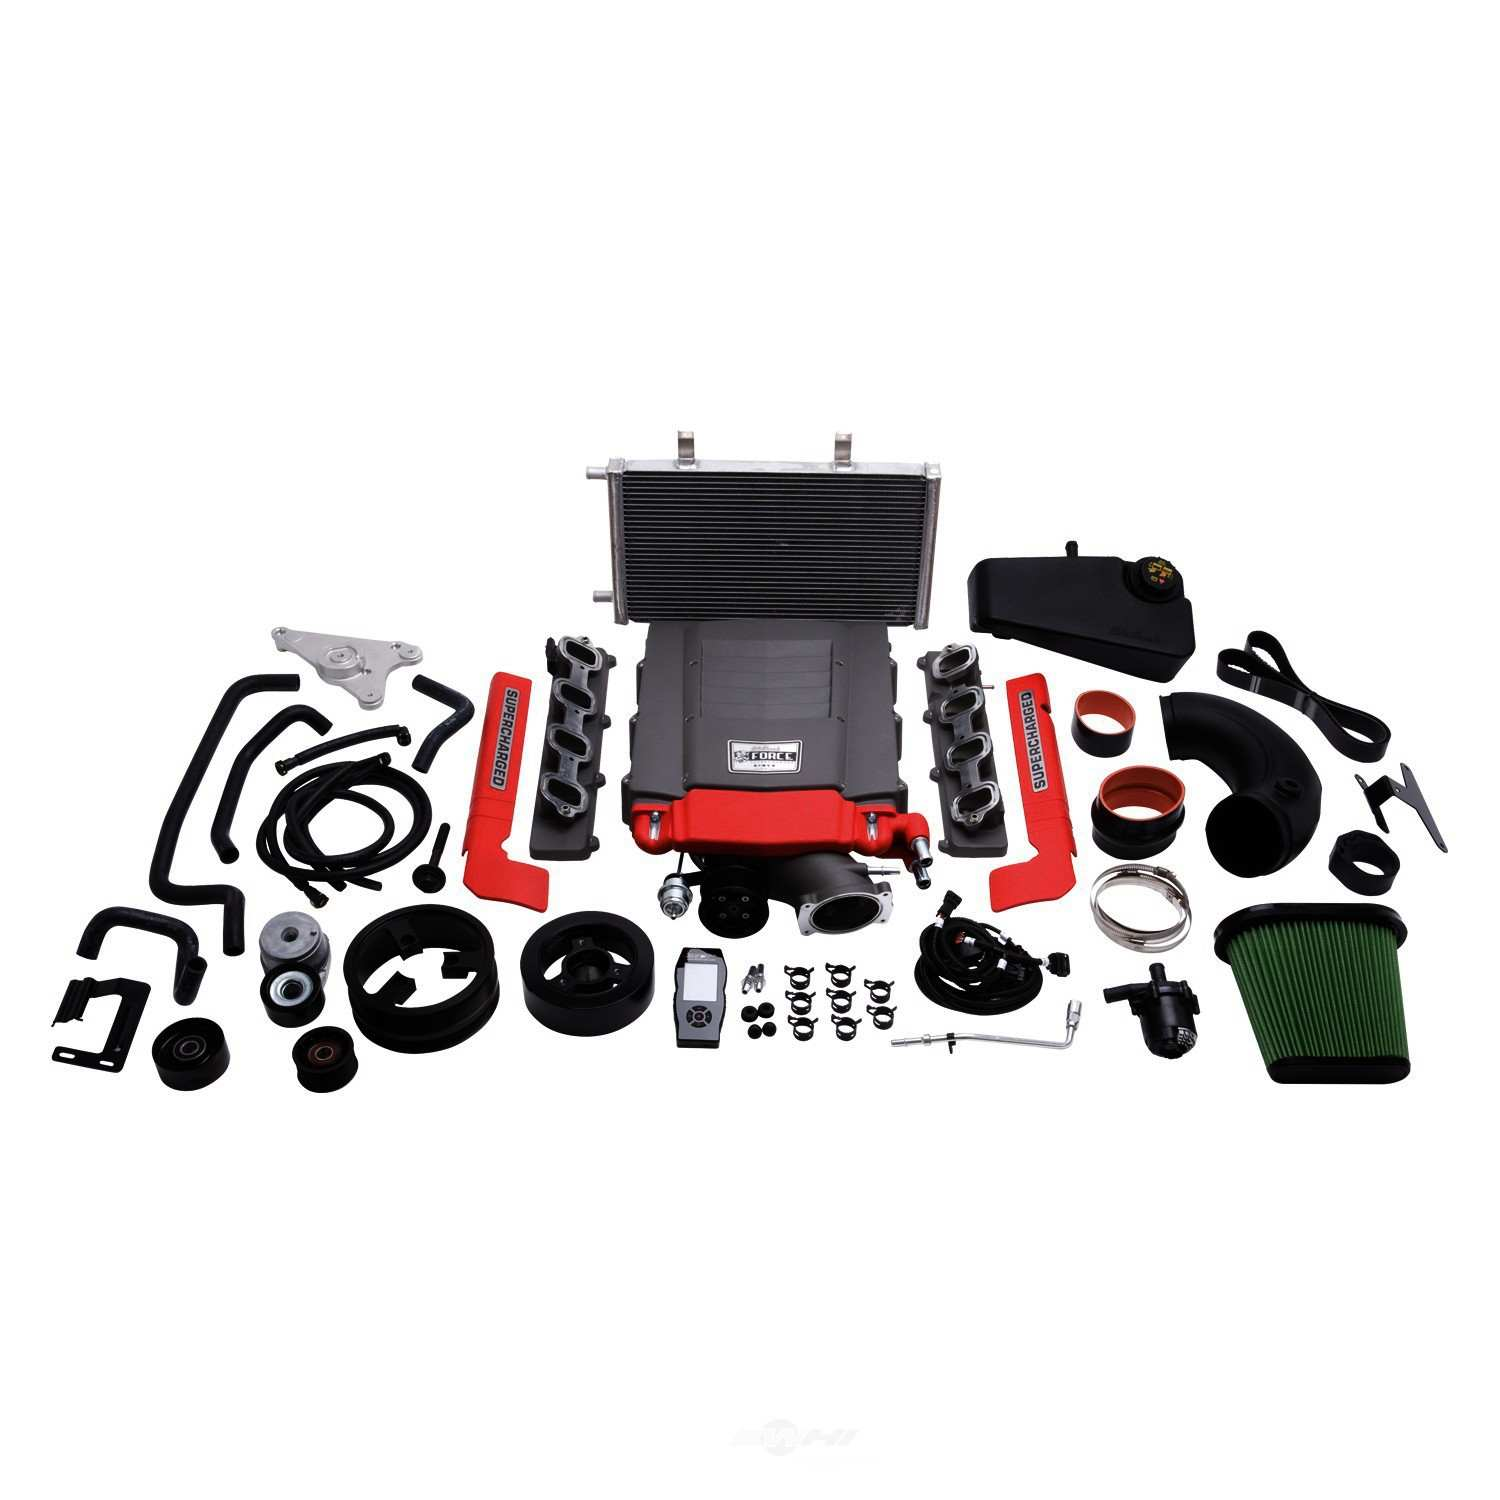 EDELBROCK - E-Force Stage-1 Street Systems Supercharger System - EDB 1570